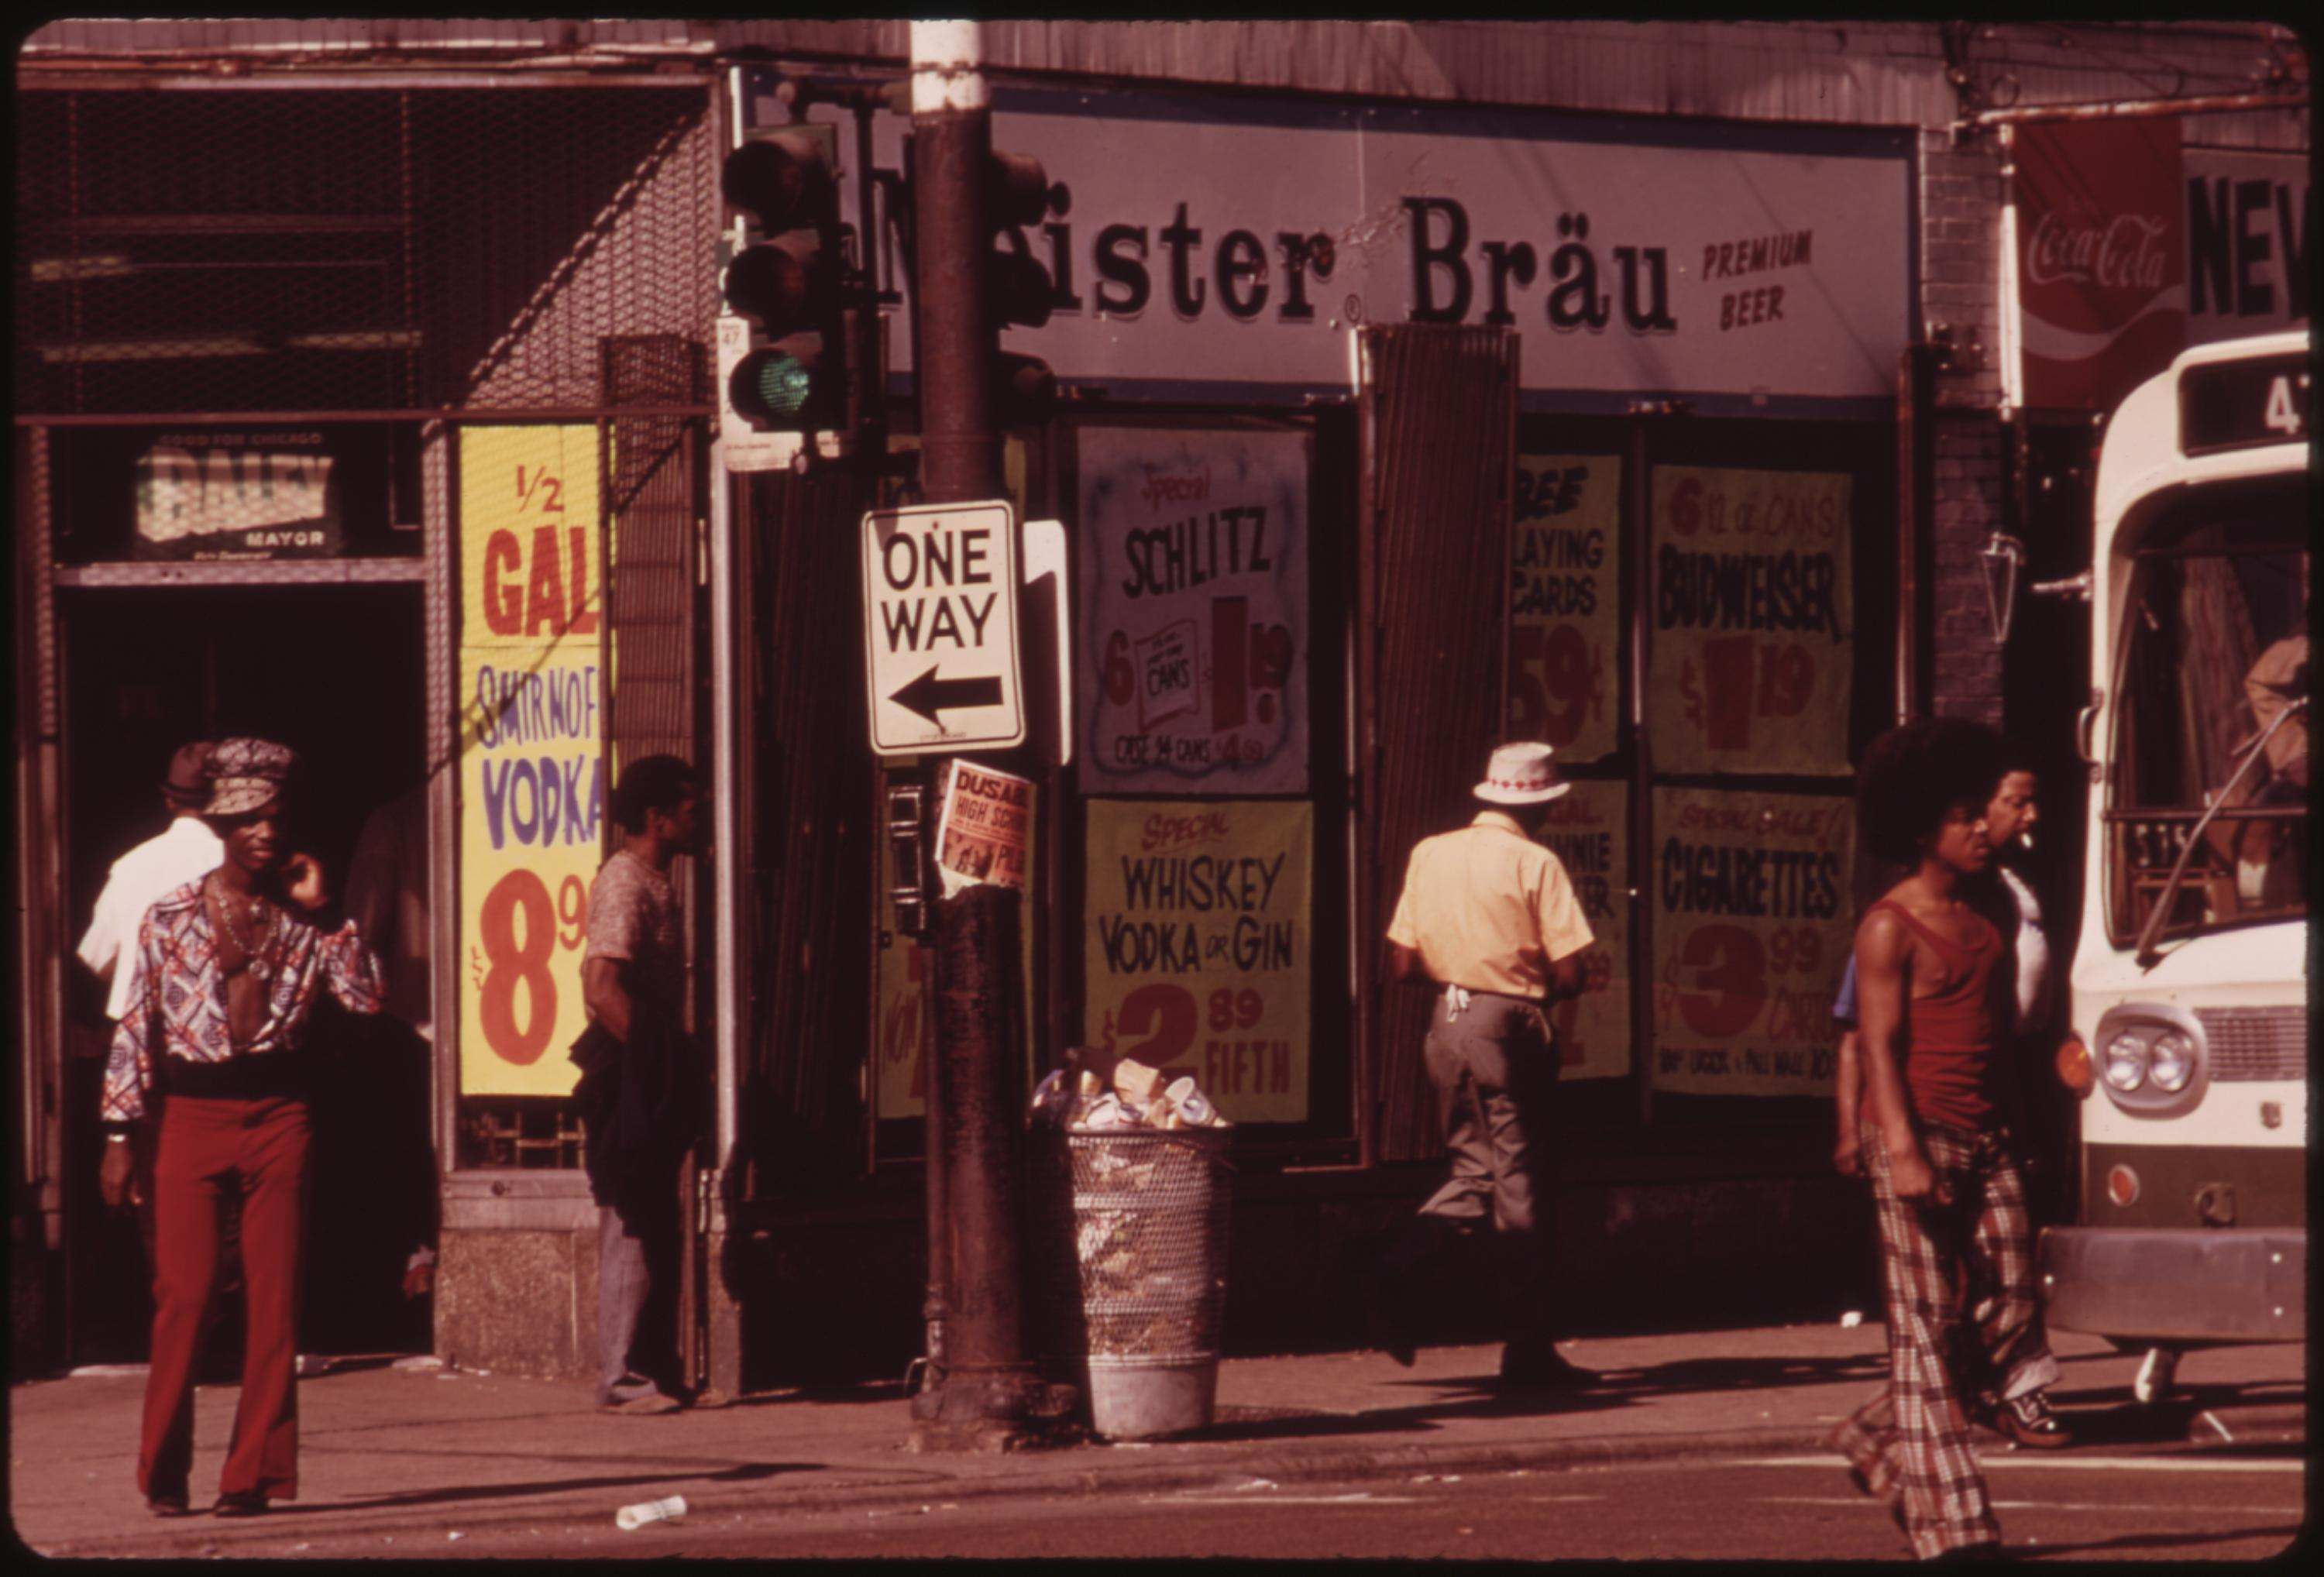 Street Scene On 47th Street In South Side Chicago, A Busy Area Where Many Small Black Businesses Are Located, 06:1973 John H. White